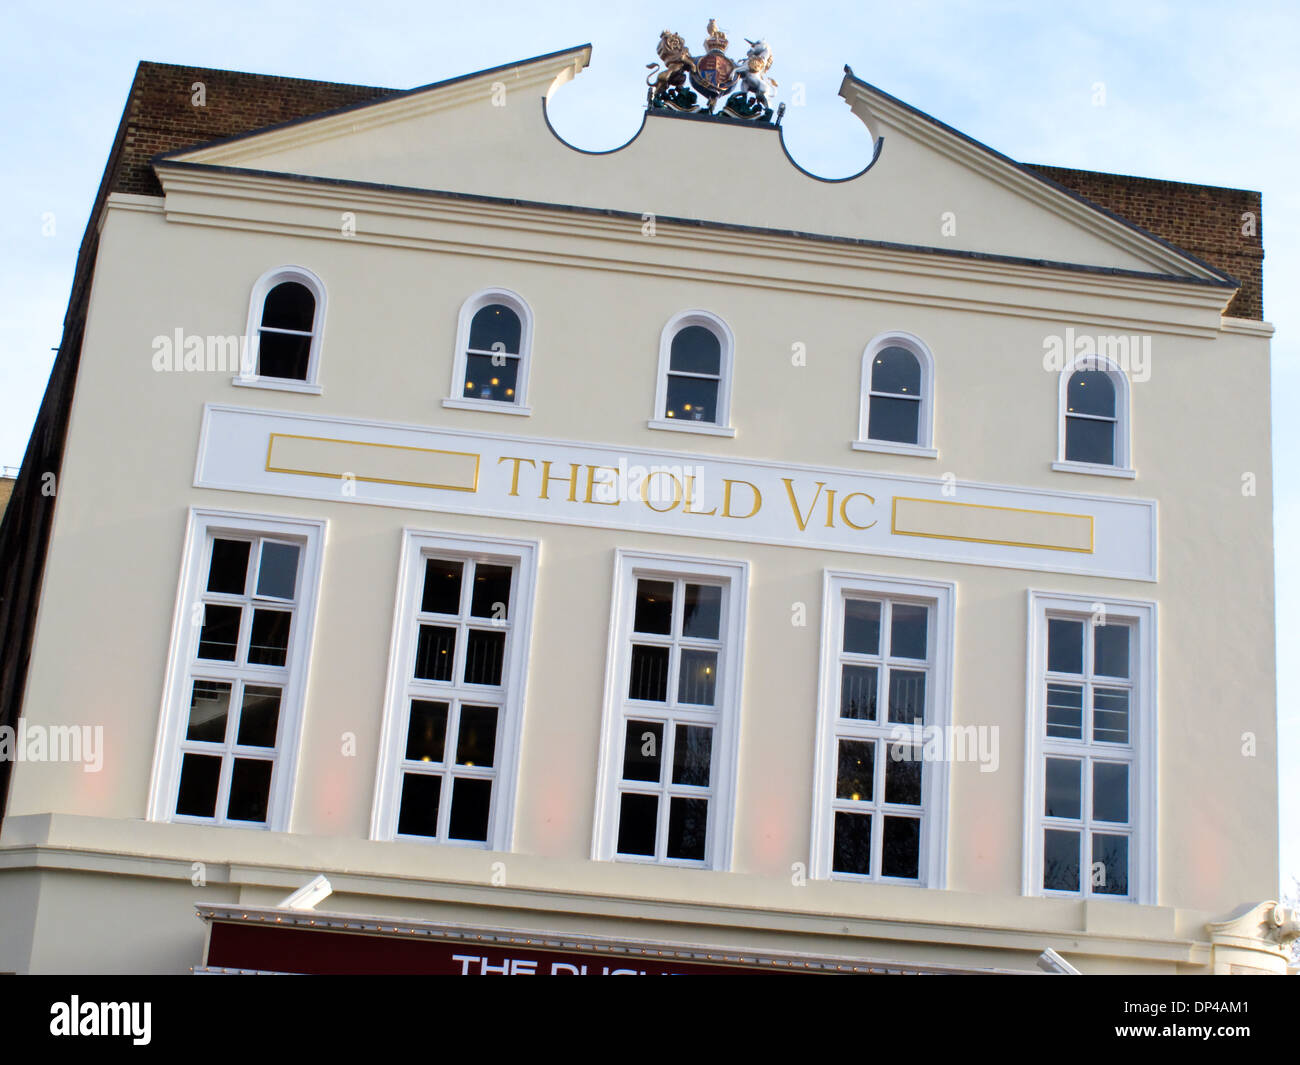 The Old Vic Theatre Waterloo Road The London Borough of Lambeth Greater London England - Stock Image